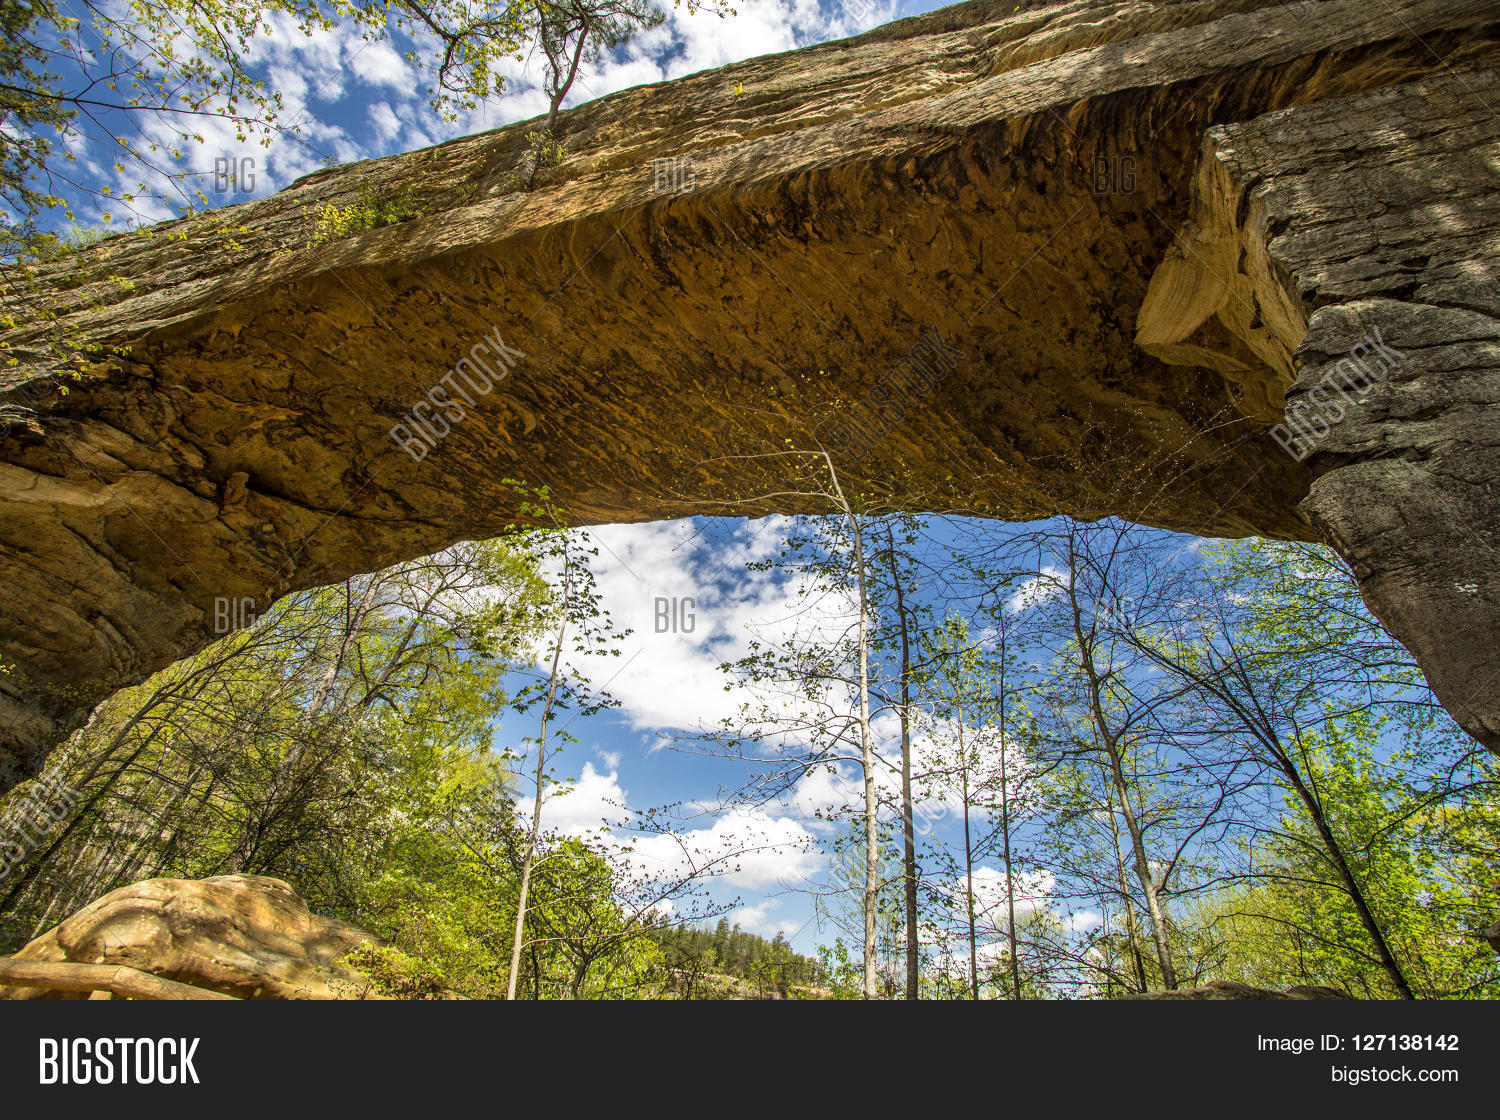 Natural Bridge In Kentucky. Visitors To Natural Bridge State Park Can Ride  A Skylift To